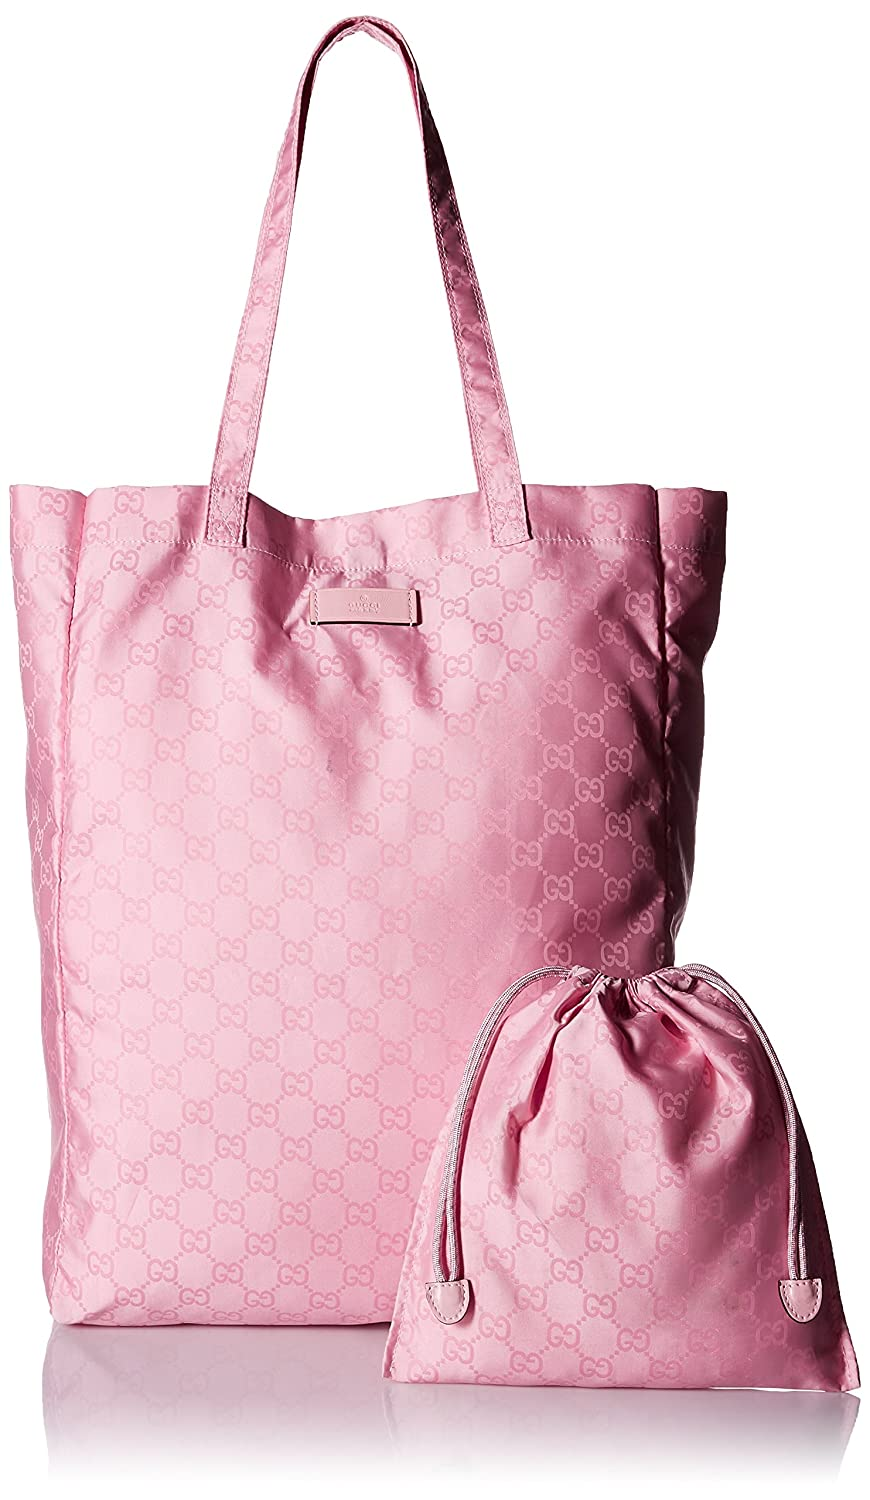 4c68097c0530 Amazon.com : Gucci Mama's Bag 281487 Baby Pink Nylon Gg Logo Tote Bag : Baby